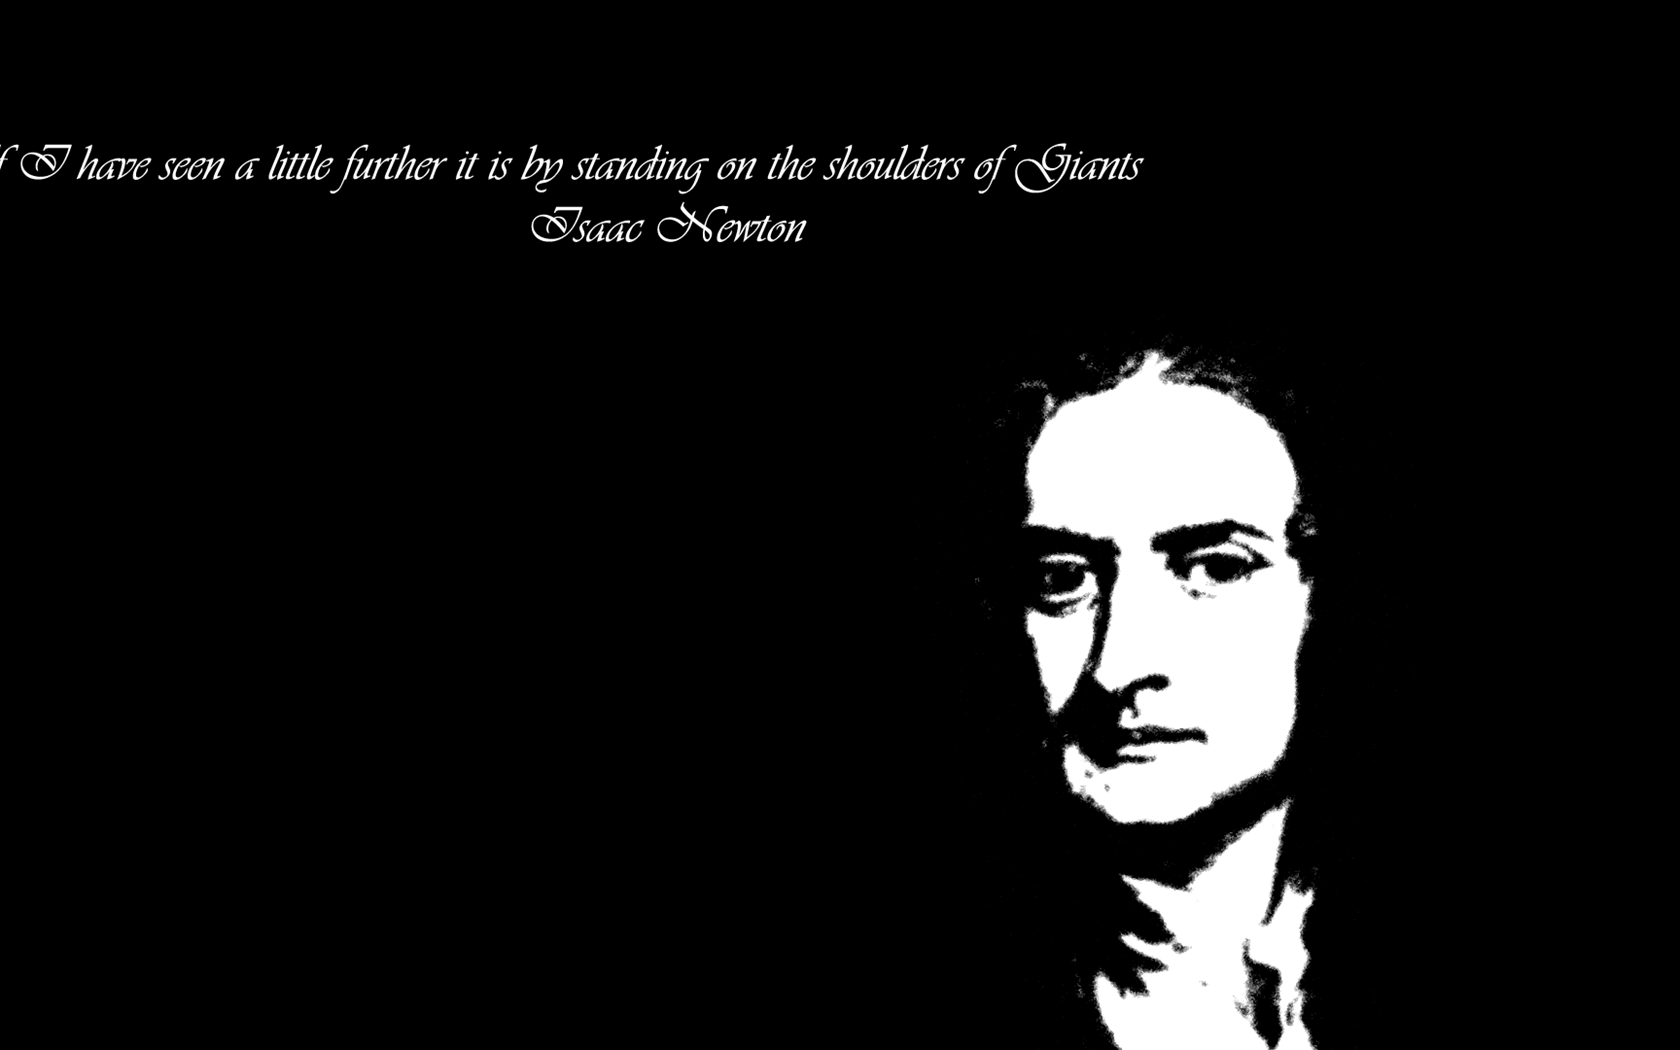 Isaac Newton Quote HD Wallpaper